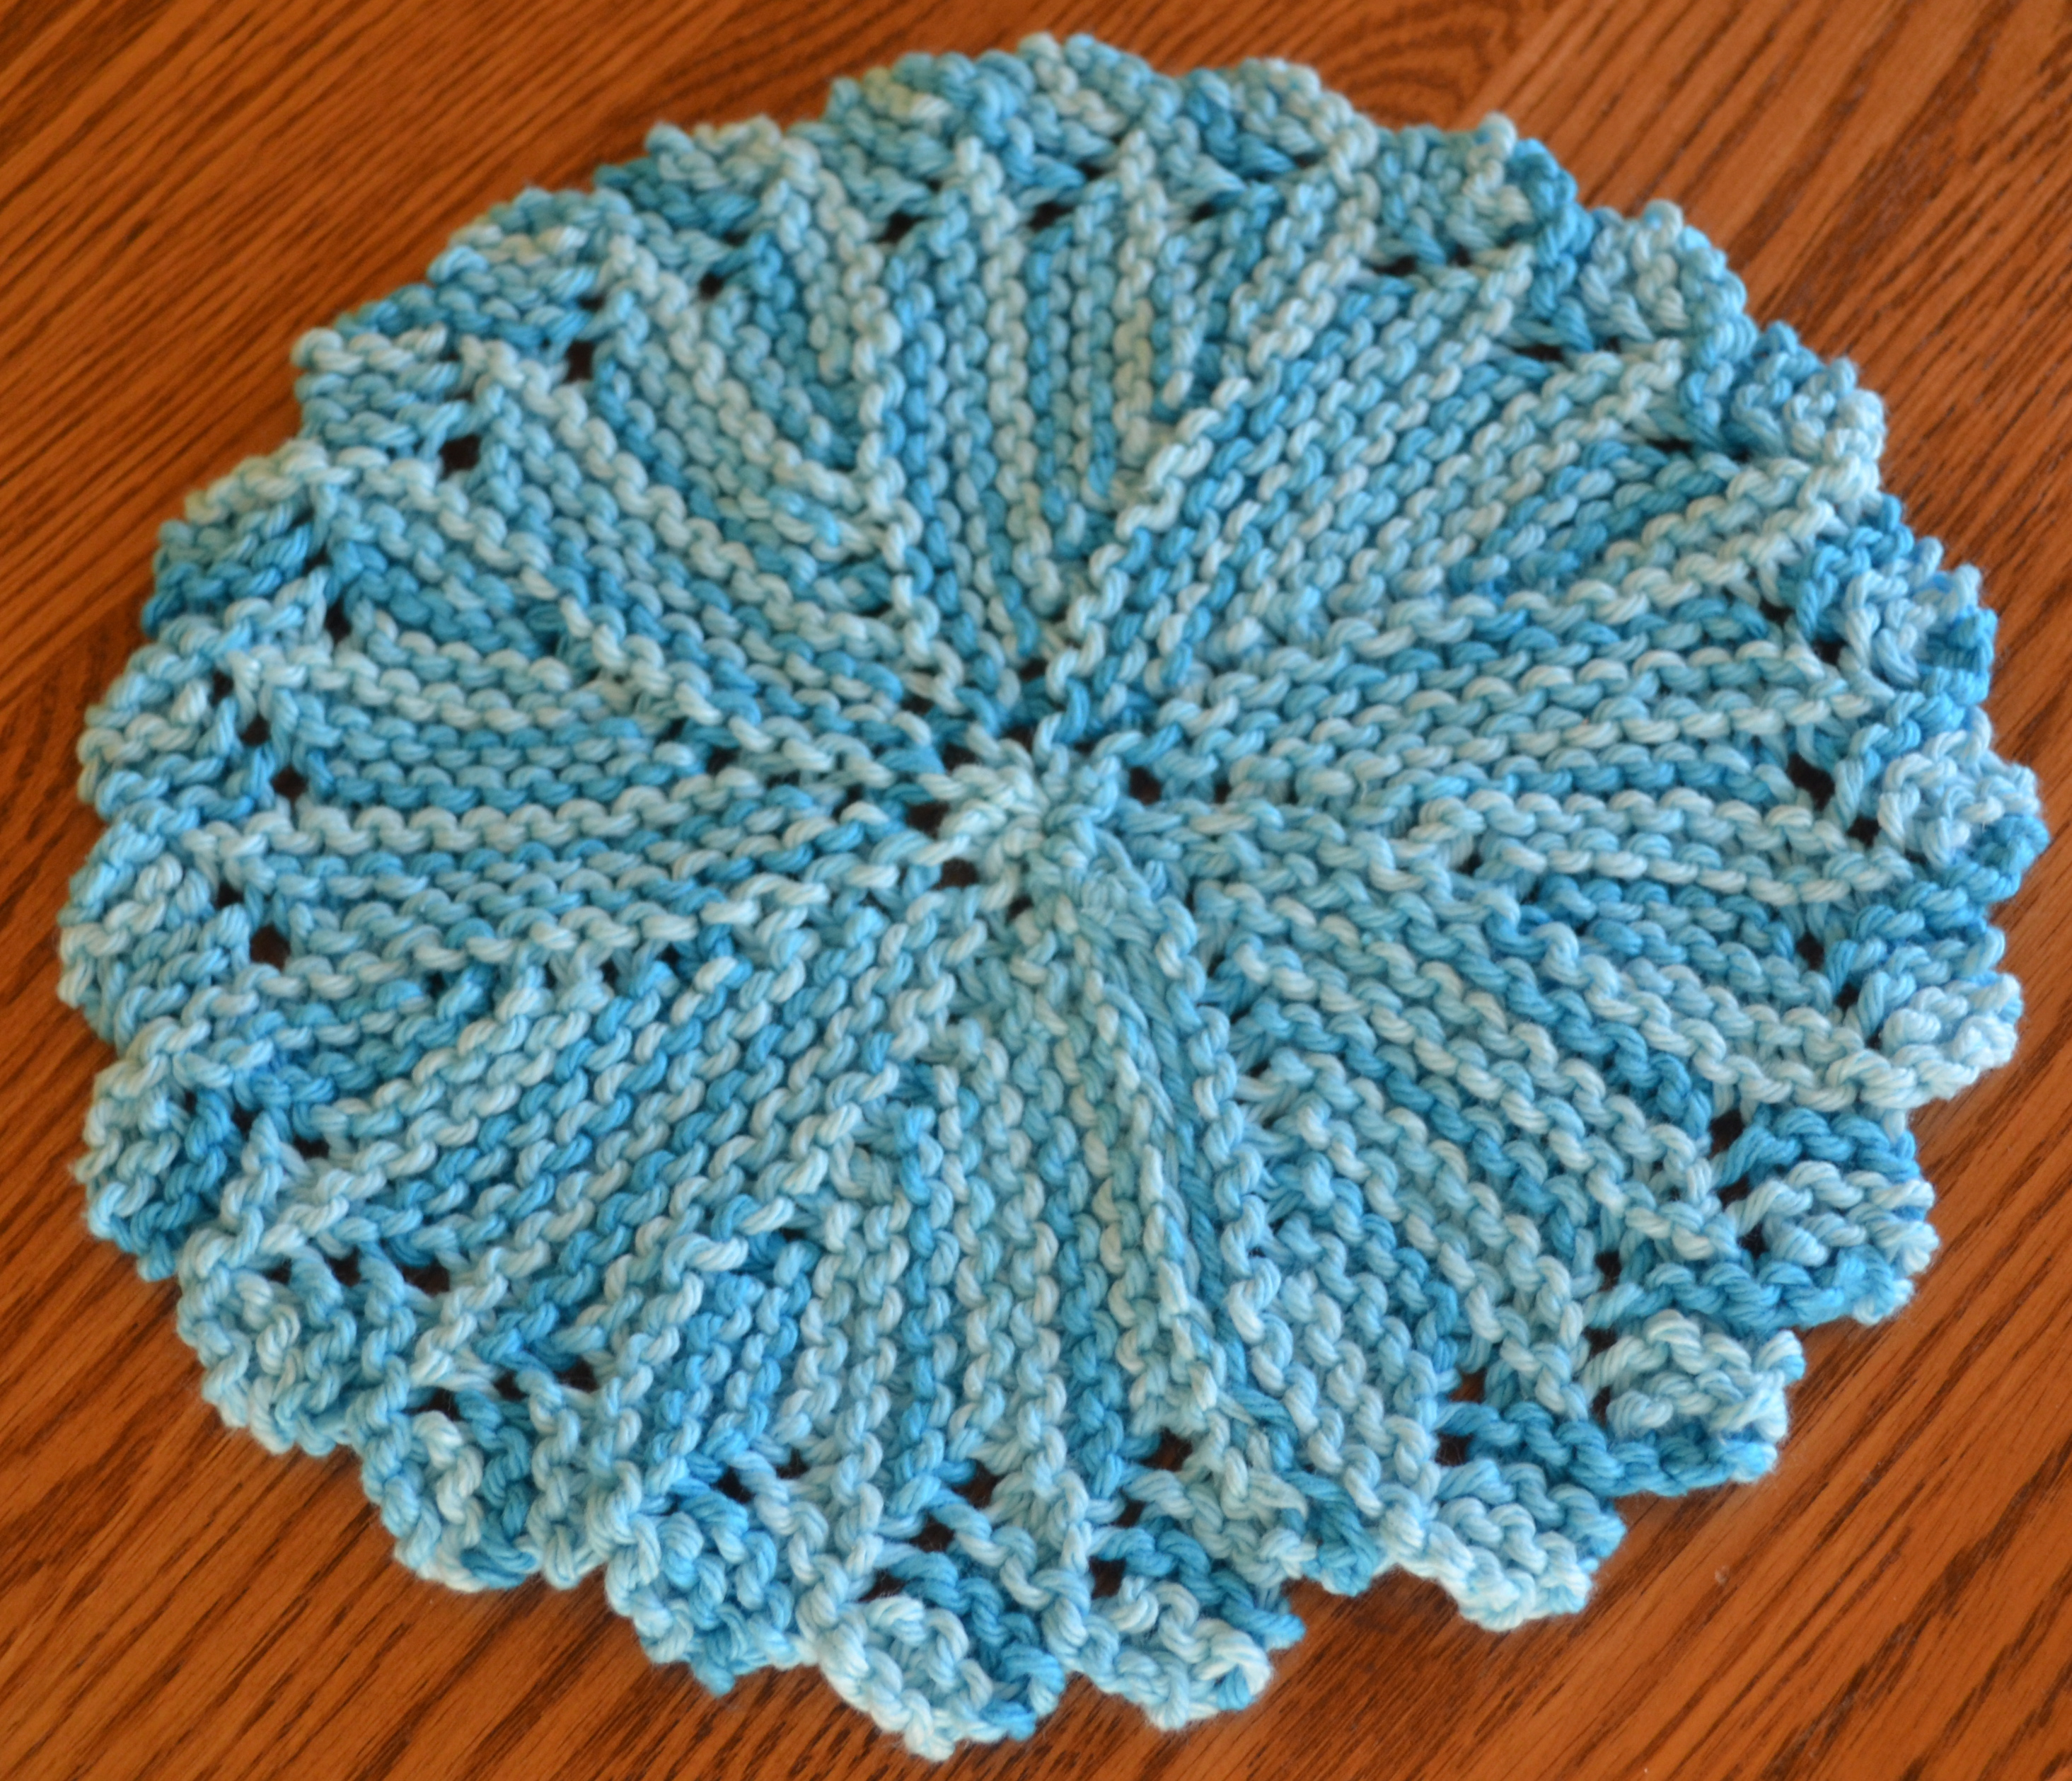 Knit Circle Pattern Practical Knitting Dishcloths Knitsnips